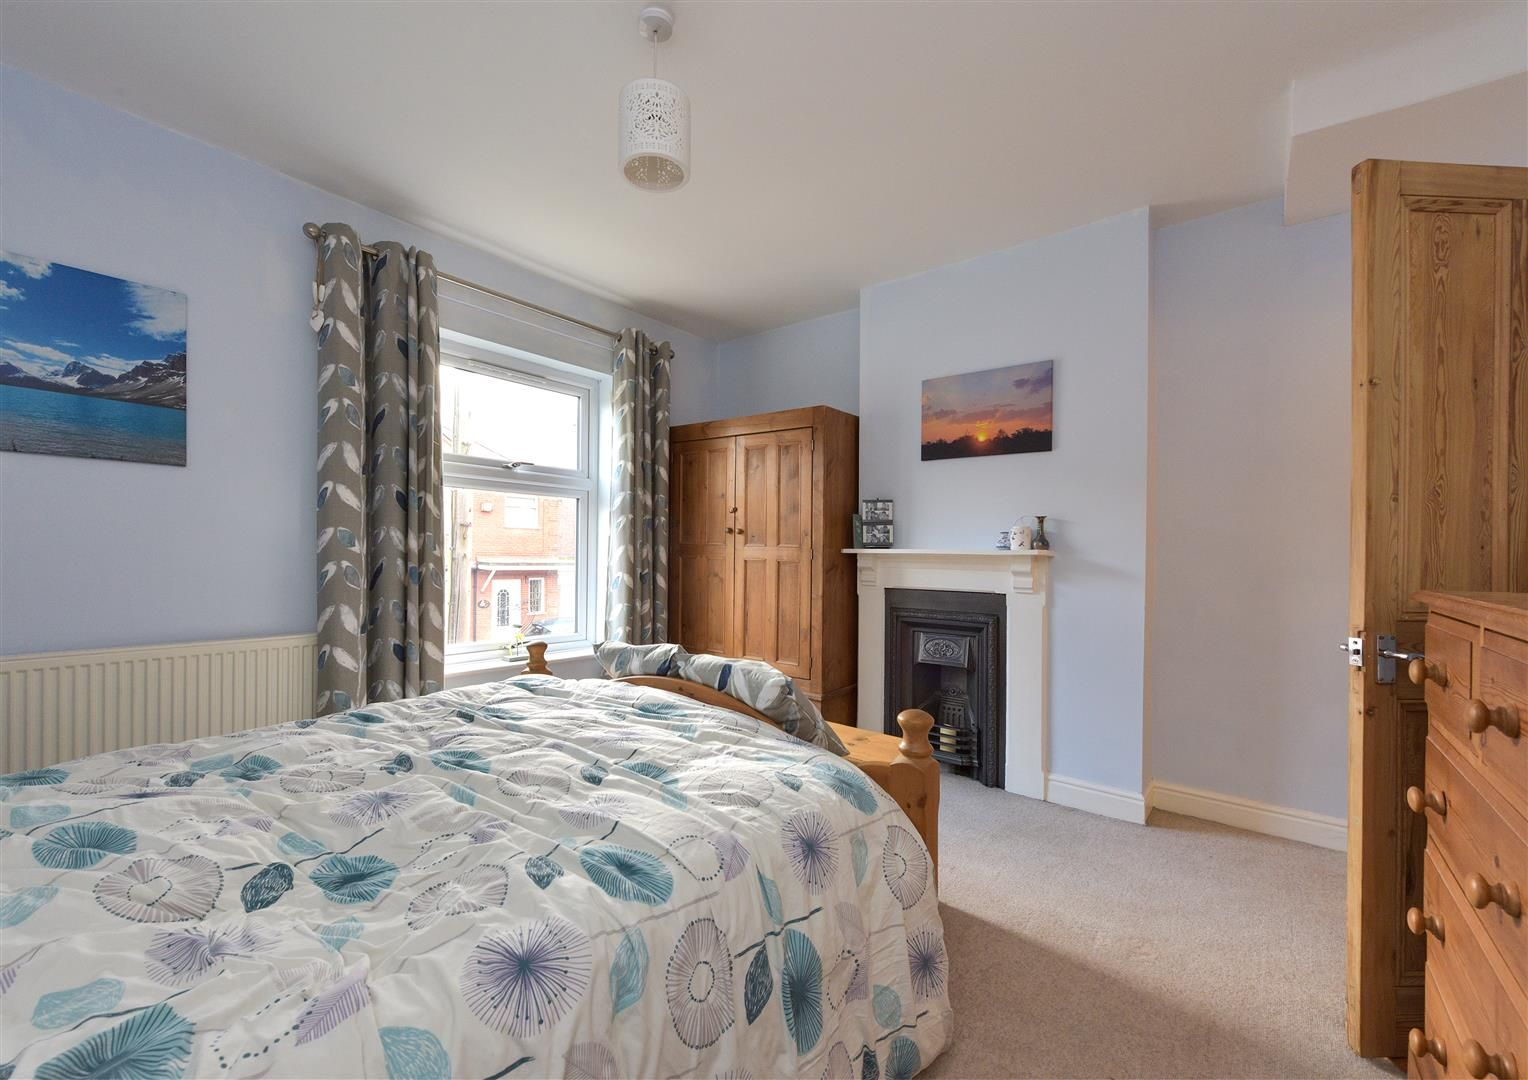 3 bed end-of-terrace for sale  - Property Image 10